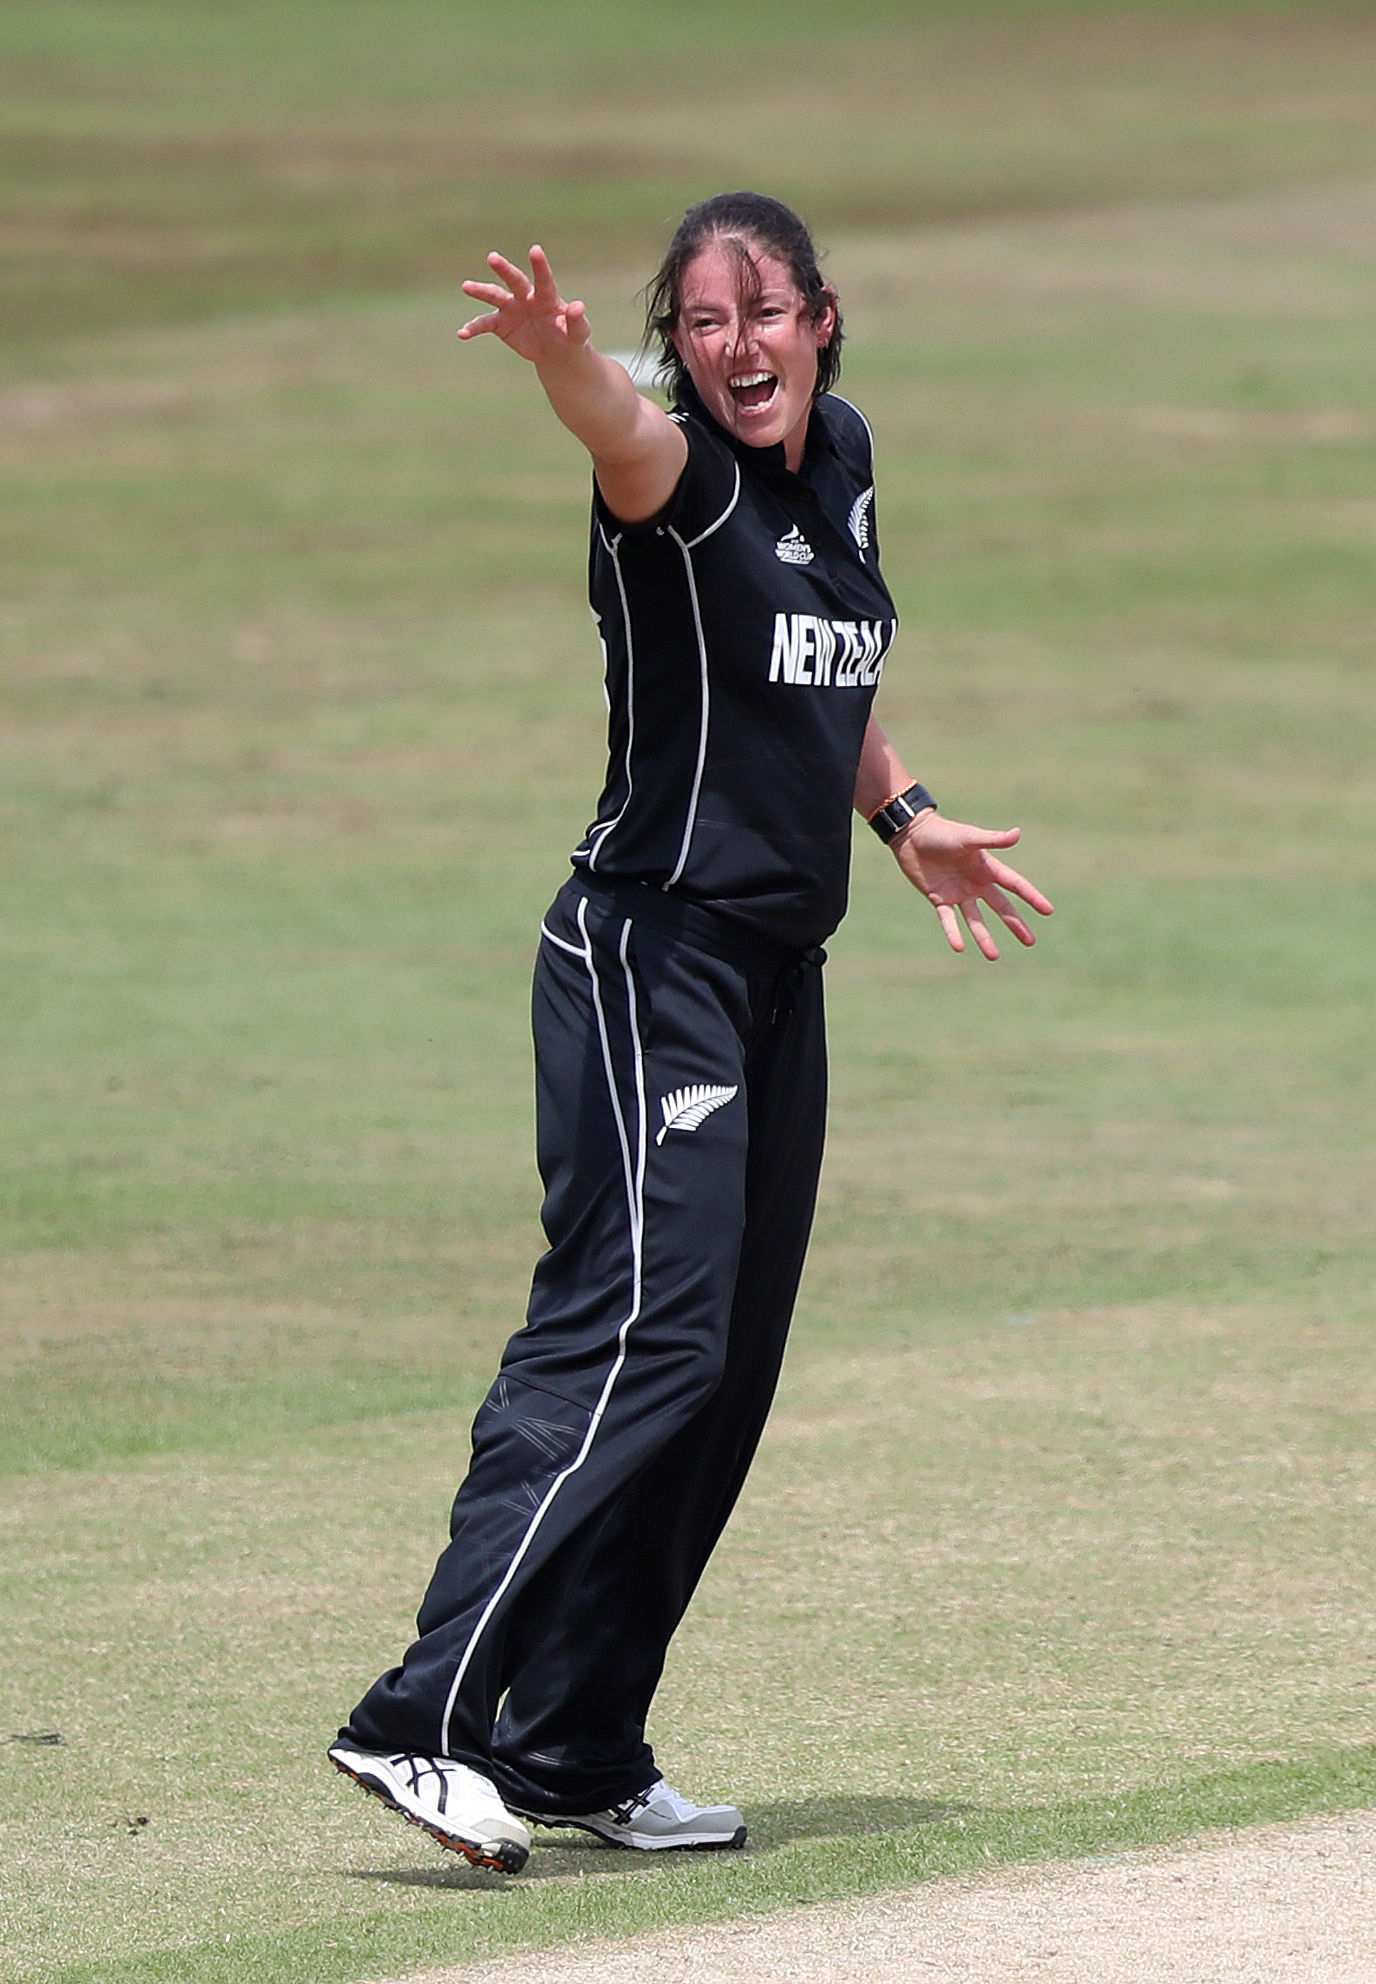 HOWZAT: New Zealand bowler Holly Huddleston helped dismiss West Indies for 150 in Taunton. Pic: PA Wire